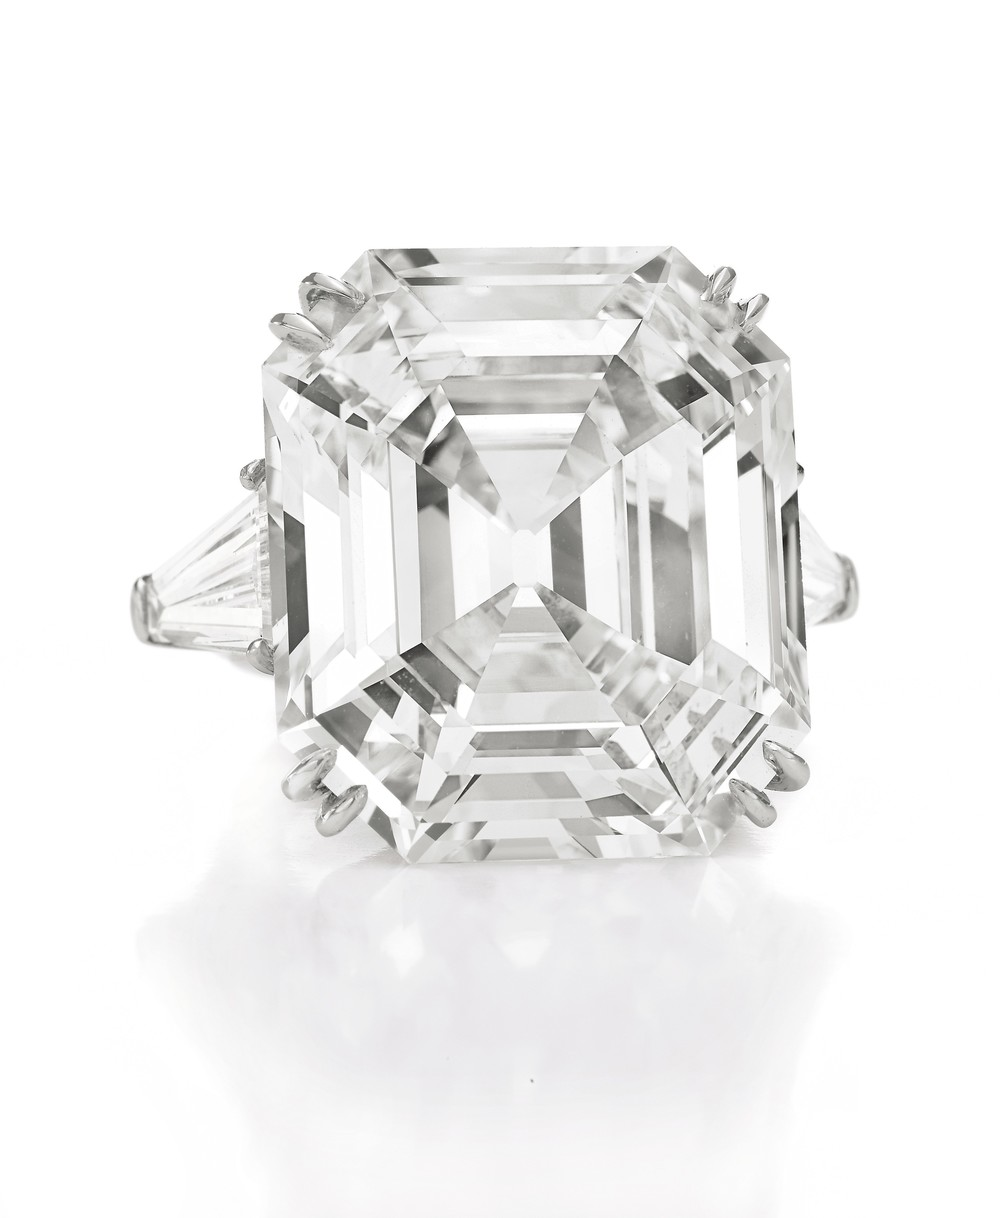 "The ""Elizabeth Taylor Diamond"" is the largest Asscher cut diamond in the world. It's a D color, Vs1 clarity, Type IIa diamond. Elizabeth Taylor wore it every day and it was her favorite diamond. The Asscher Cut was cut and invented by the Joseph Asscher of Royal Asscher Diamond Company in 1902, and was the first patented cut in the world. ""This remarkable stone is called the Krupp diamond because it had been owned by Vera Krupp, of the famous munitions family that helped knock off millions of Jews,"" wrote Taylor. ""When it came up for auction in the late 1960s, I thought how perfect it would be if a nice Jewish girl like me were to own it. In truth, though, there's nothing funny about the Krupp. When I look into it, the deep Asscher cuts—which are so complete and ravishing—are like steps that lead into eternity and beyond. With its sparks of red and white and blue and purple, and on and on, really, it sort of hums with its own beatific life. To me, the Krupp says, 'I want to share my chemistry—my magic—with you.'"